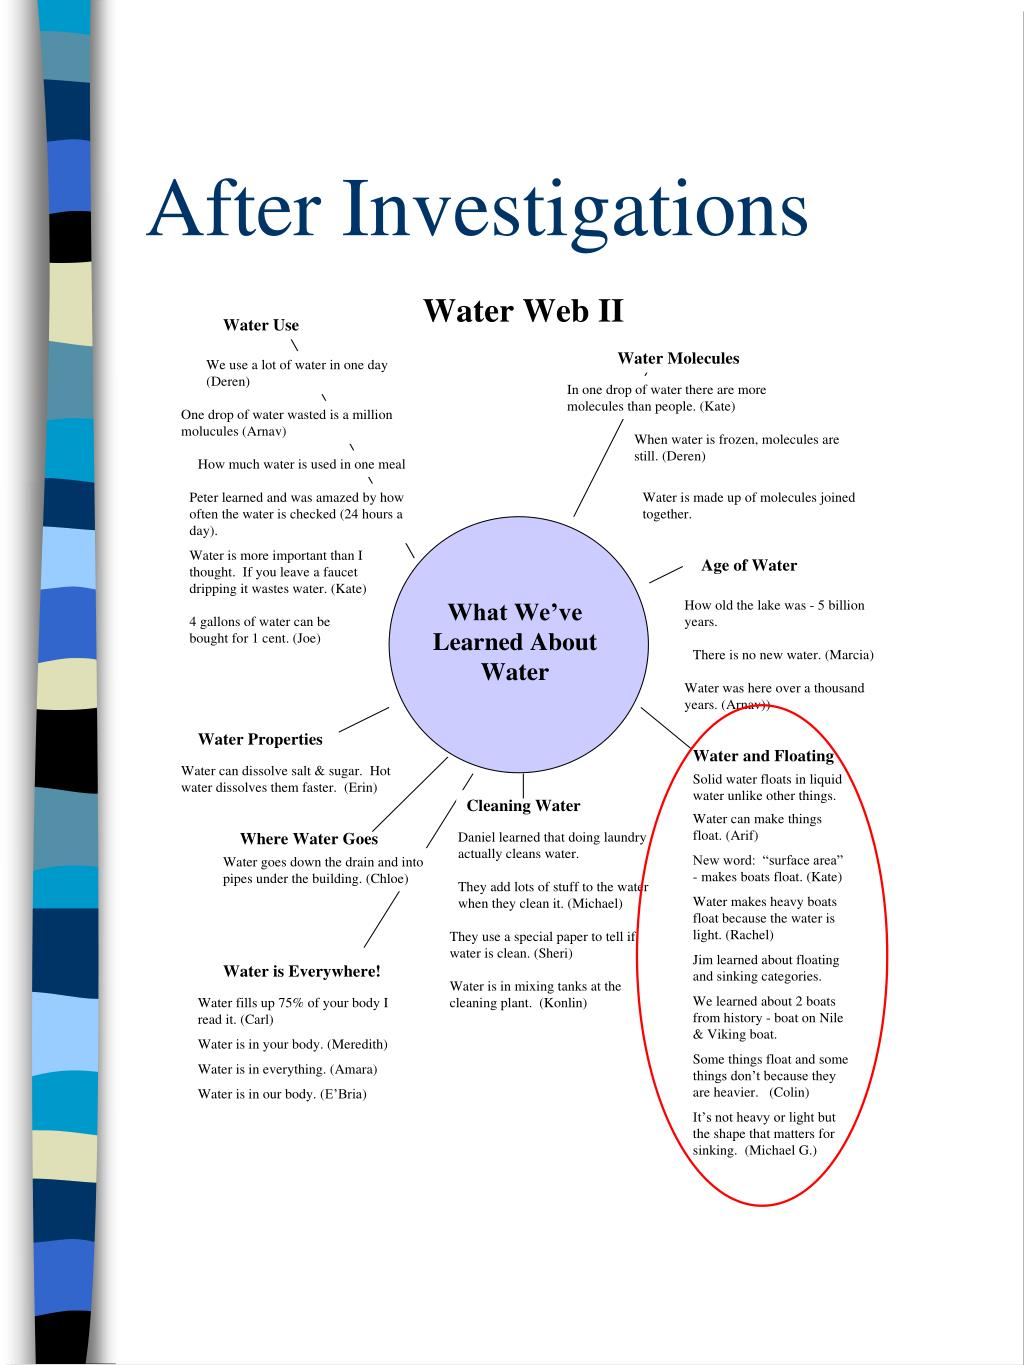 After Investigations